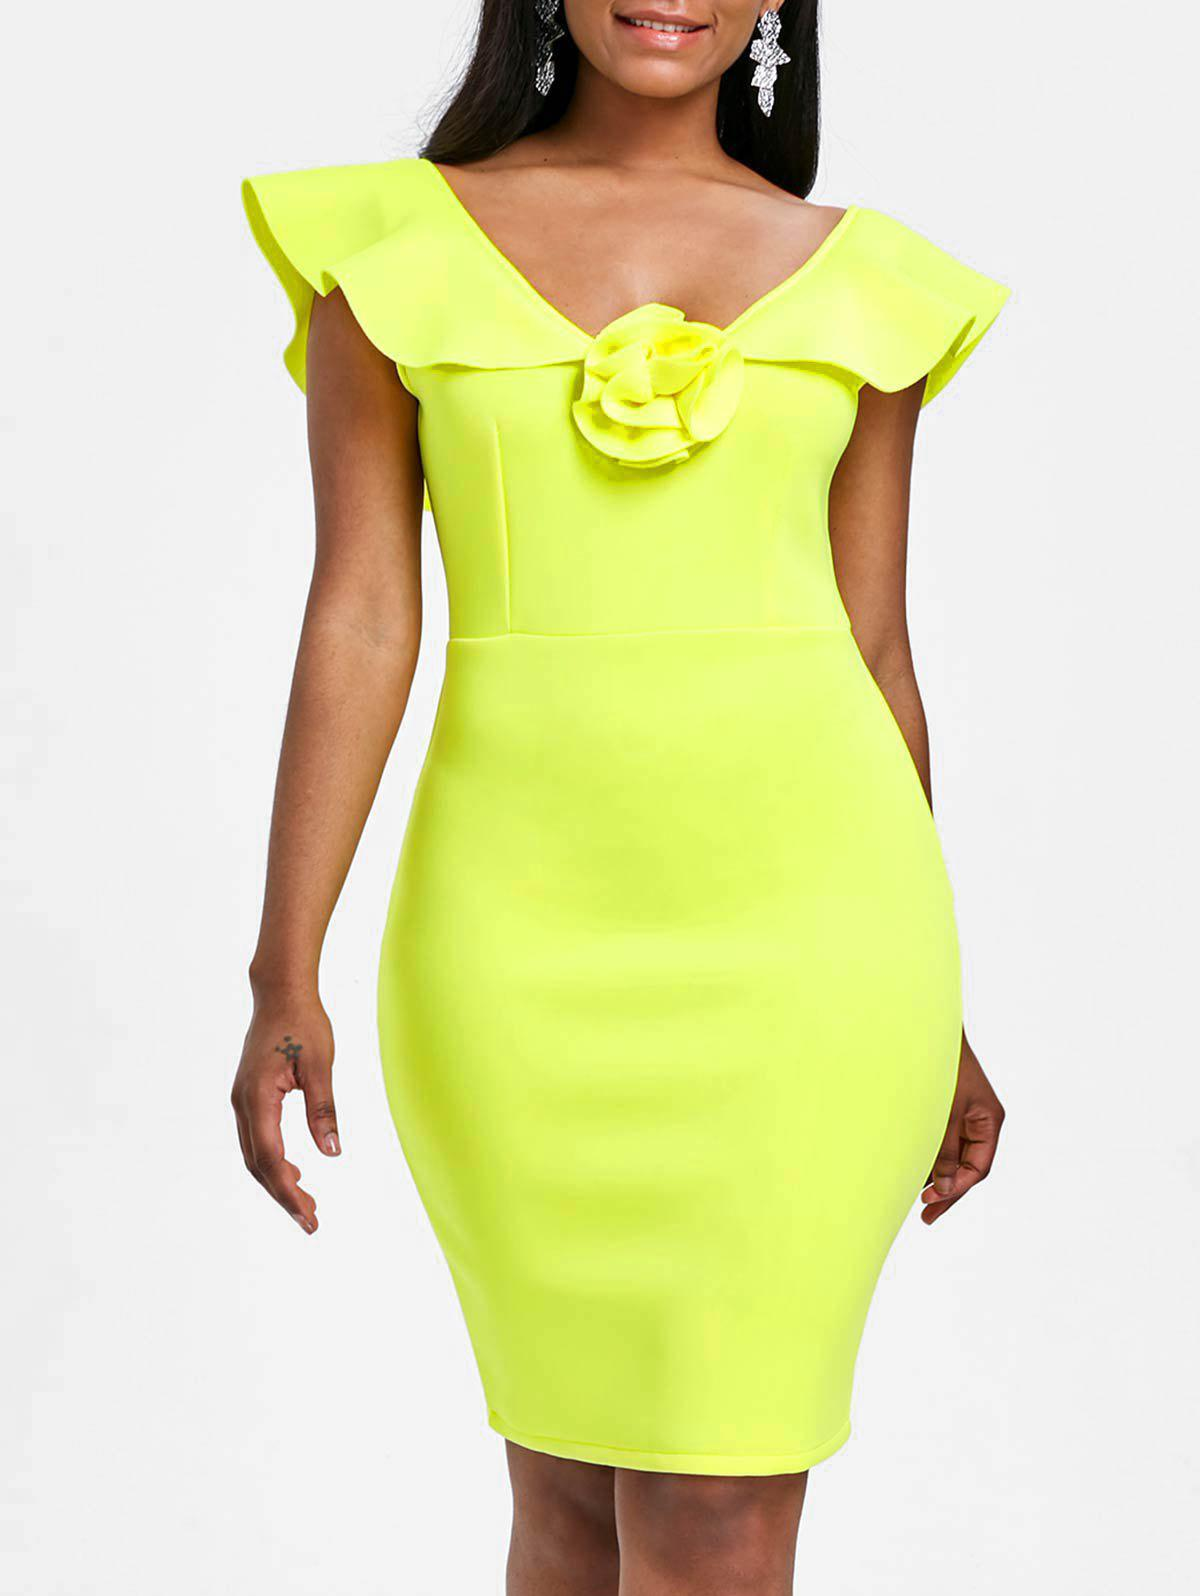 Sleeveless Flounce Bodycon Party Dress - YELLOW XL